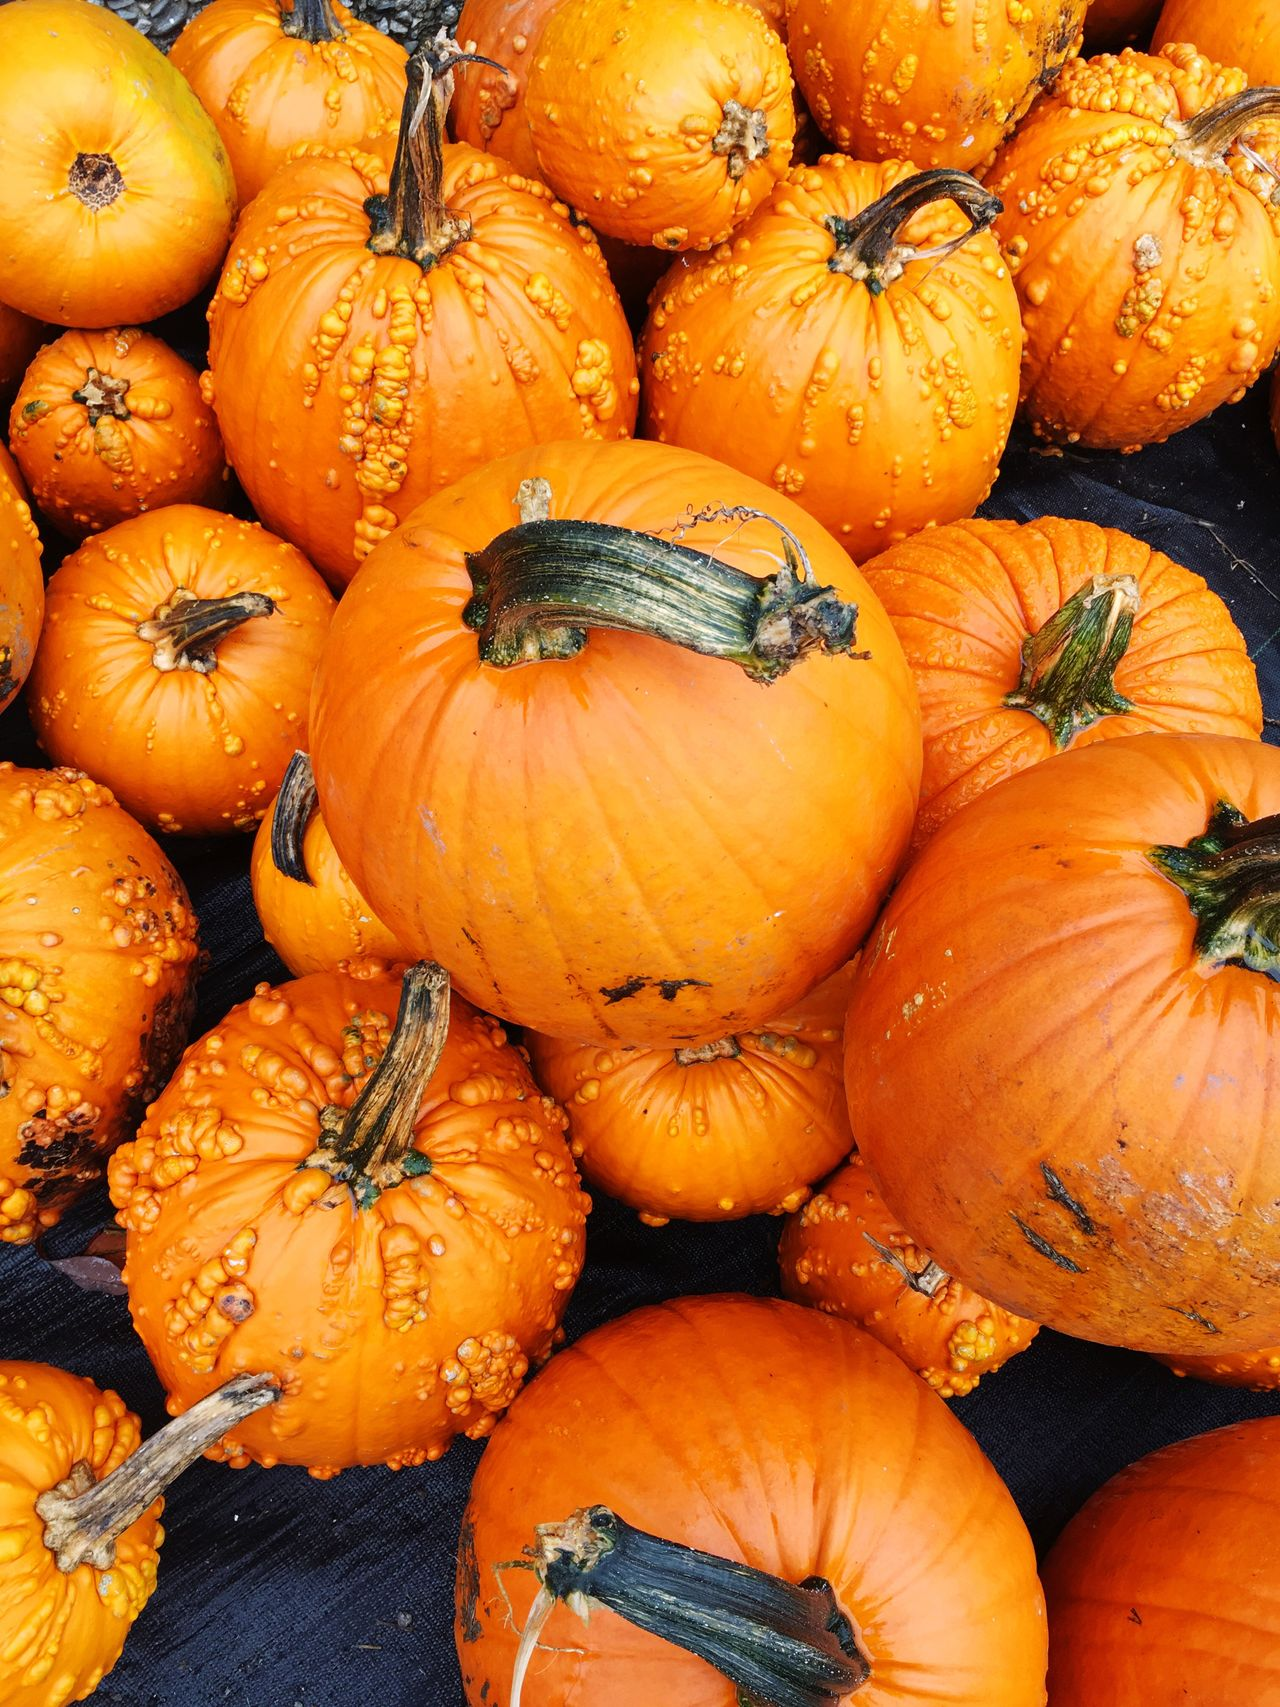 Pumpkins Abundance Food Food And Drink Freshness Healthy Eating Large Group Of Objects Backgrounds Orange Color For Sale Retail  Close-up Healthy Lifestyle Vegetable Consumerism Selling Vibrant Color Overhead View No People Arrangement